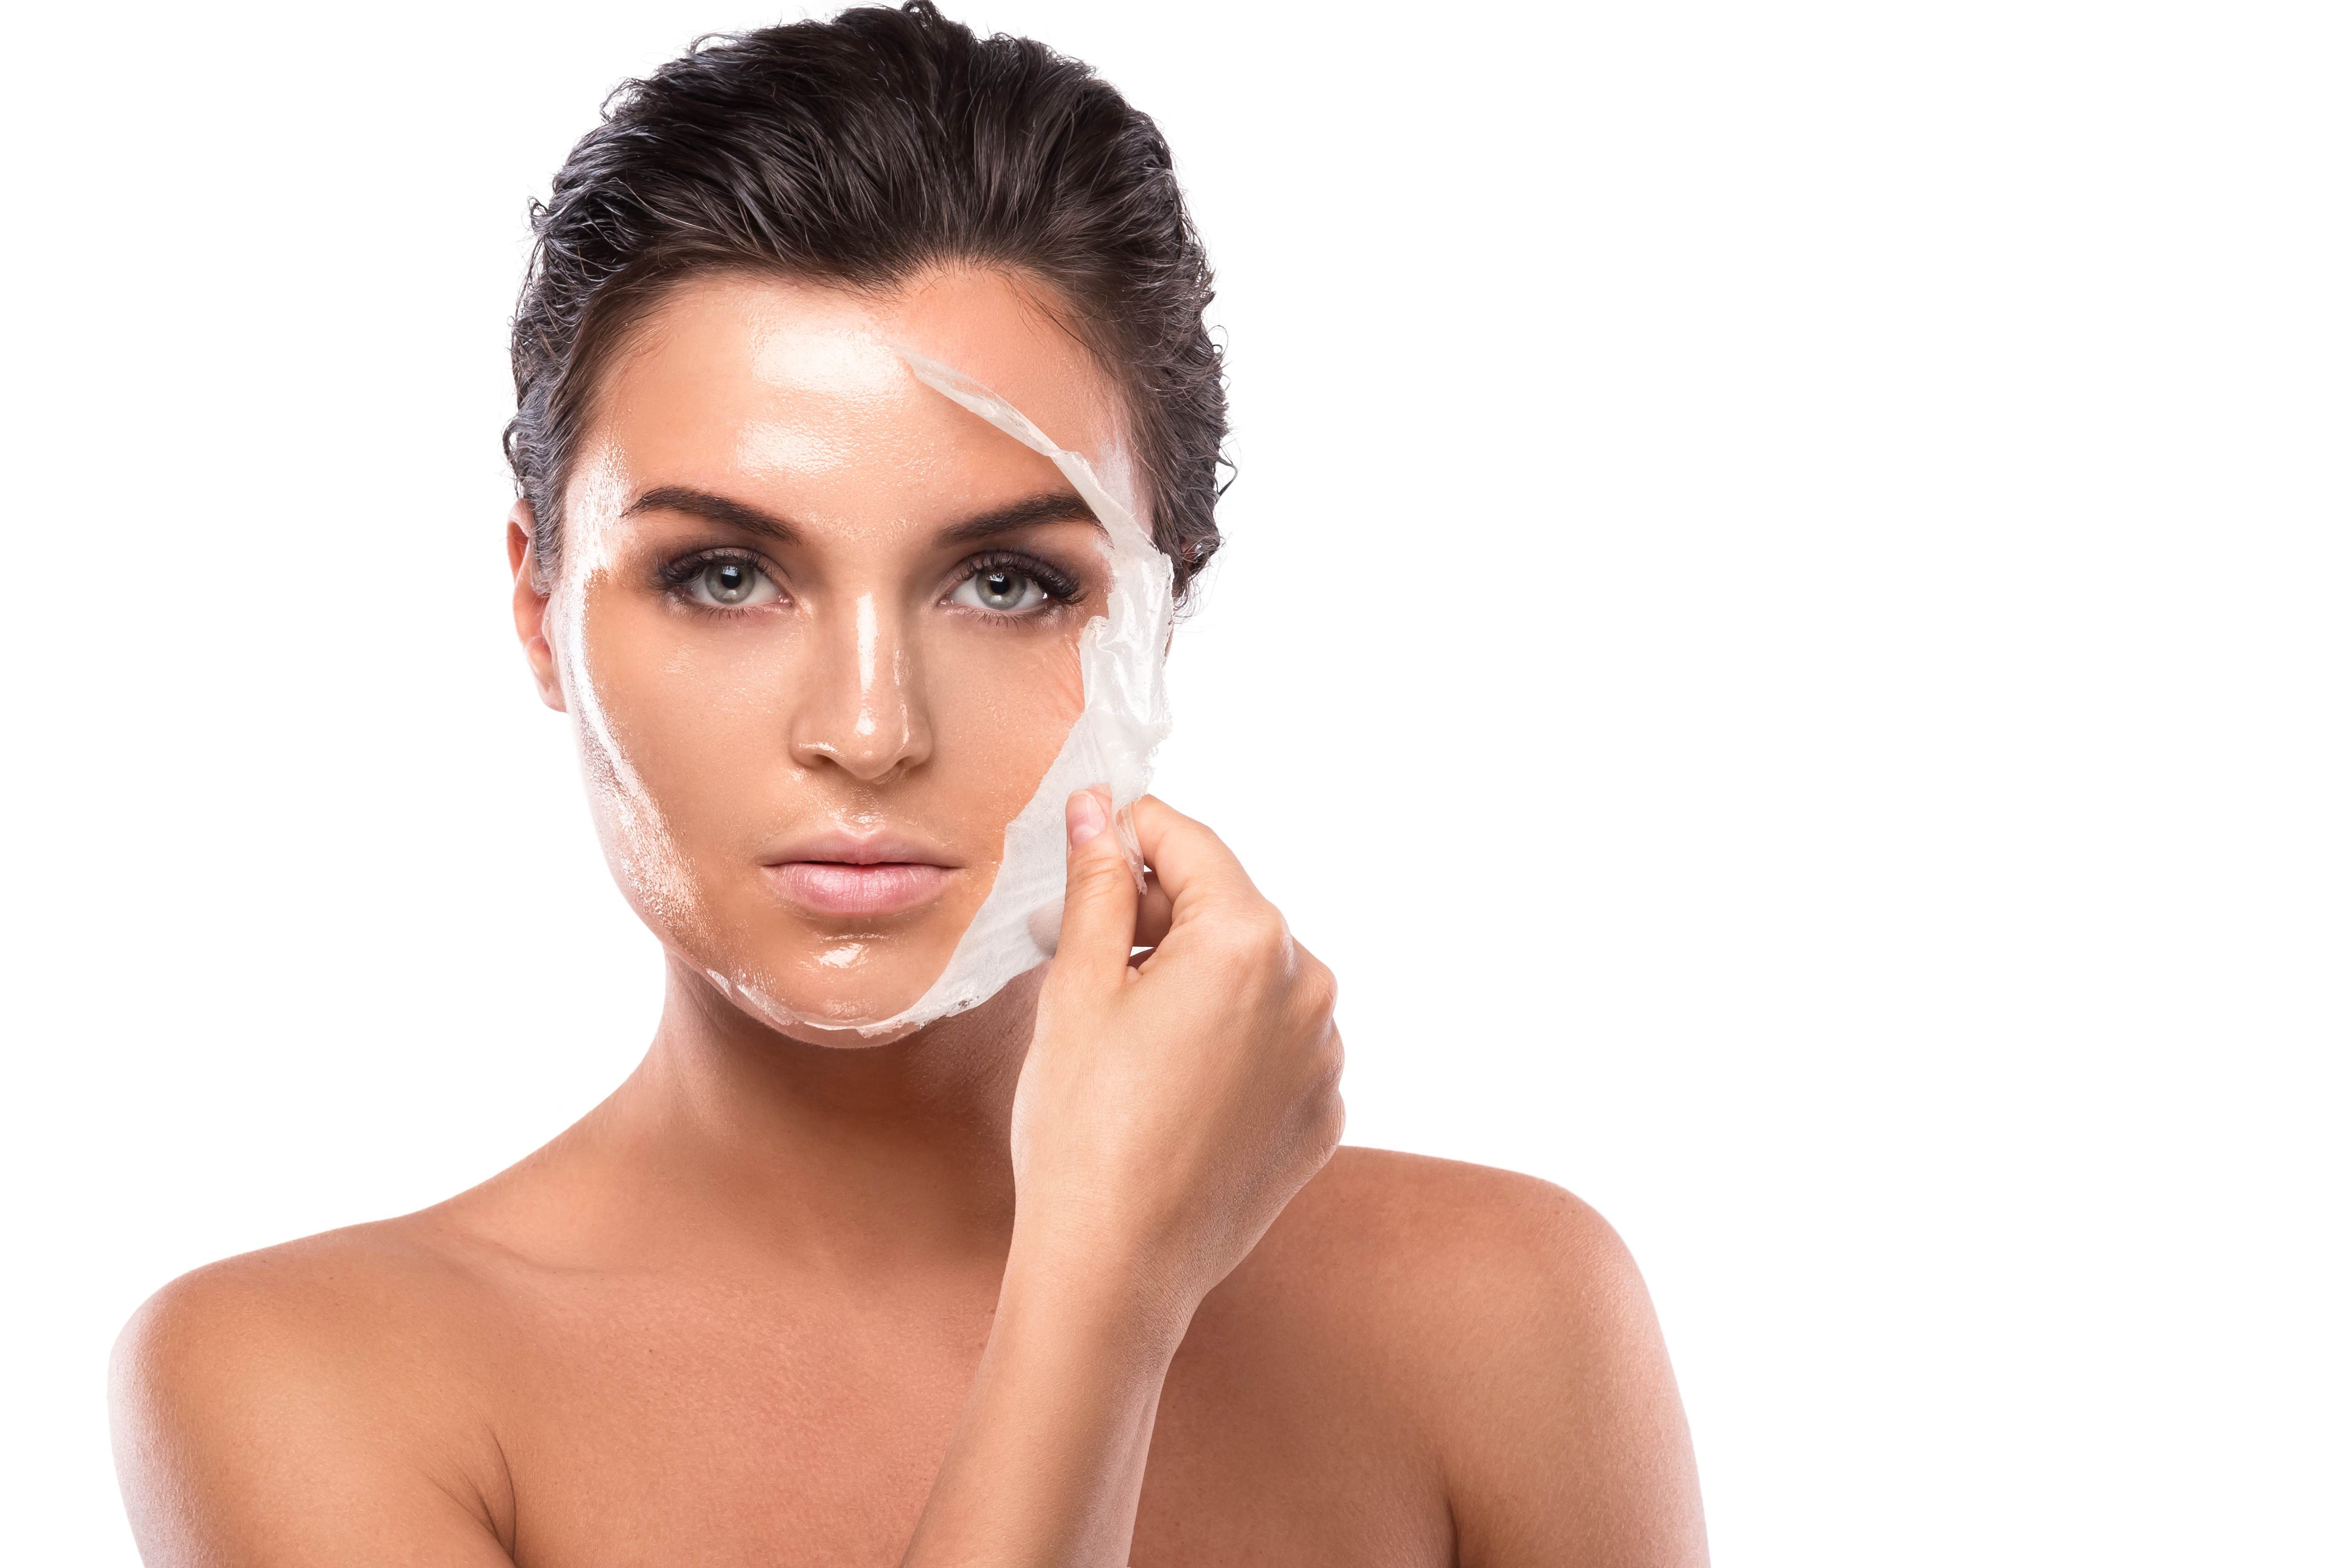 woman removing a face mask, healthy skin after 40